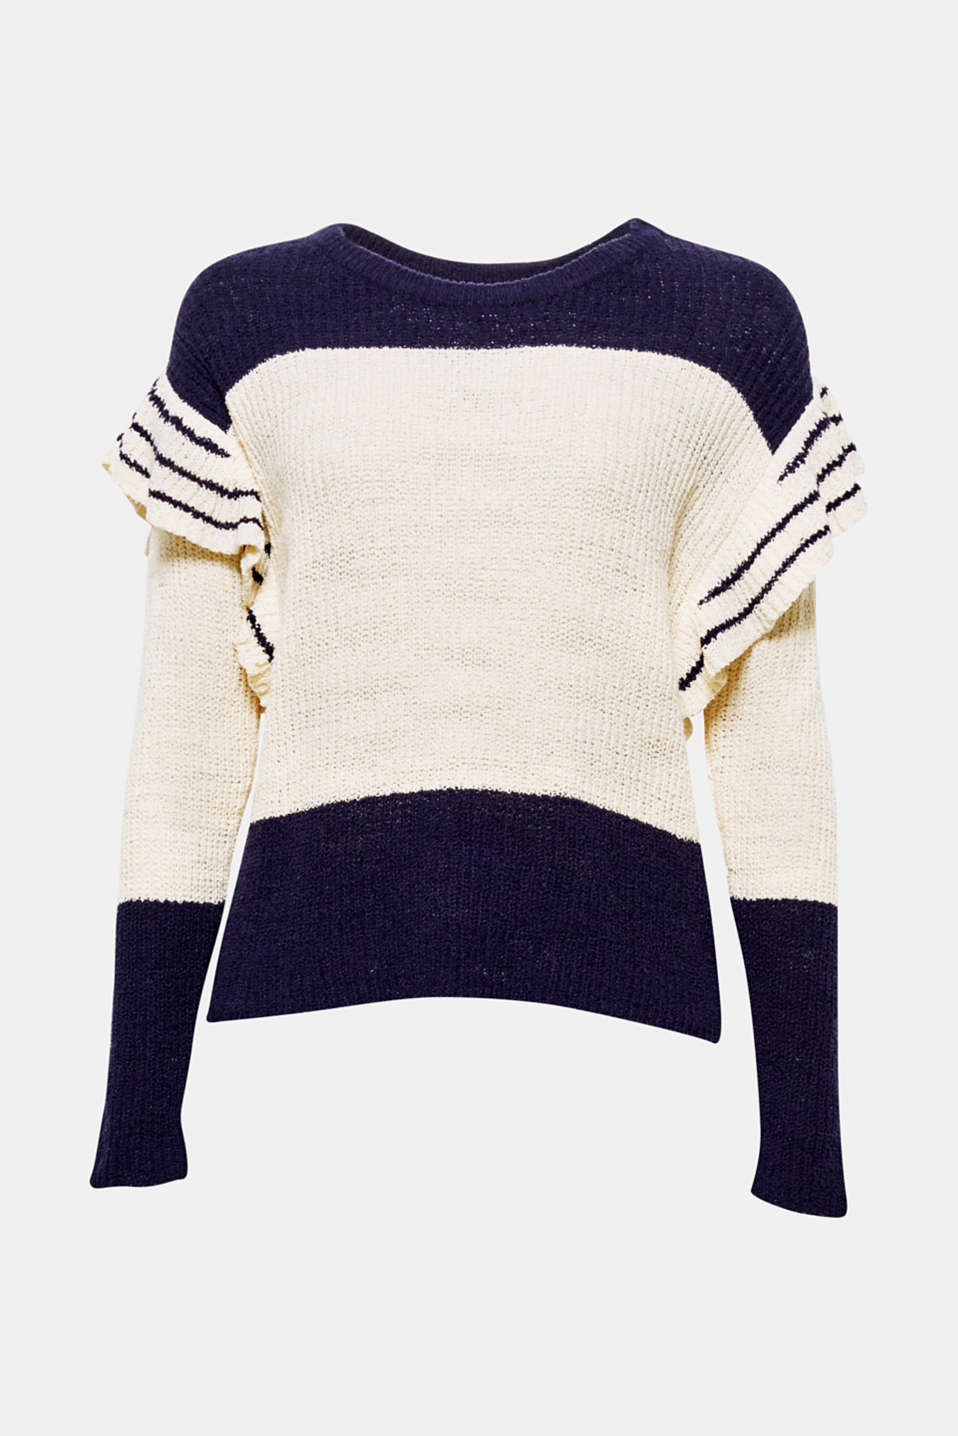 Great yarn, distinctive colour blocking and voluminous frills: this casual jumper gives you some great fashion details!